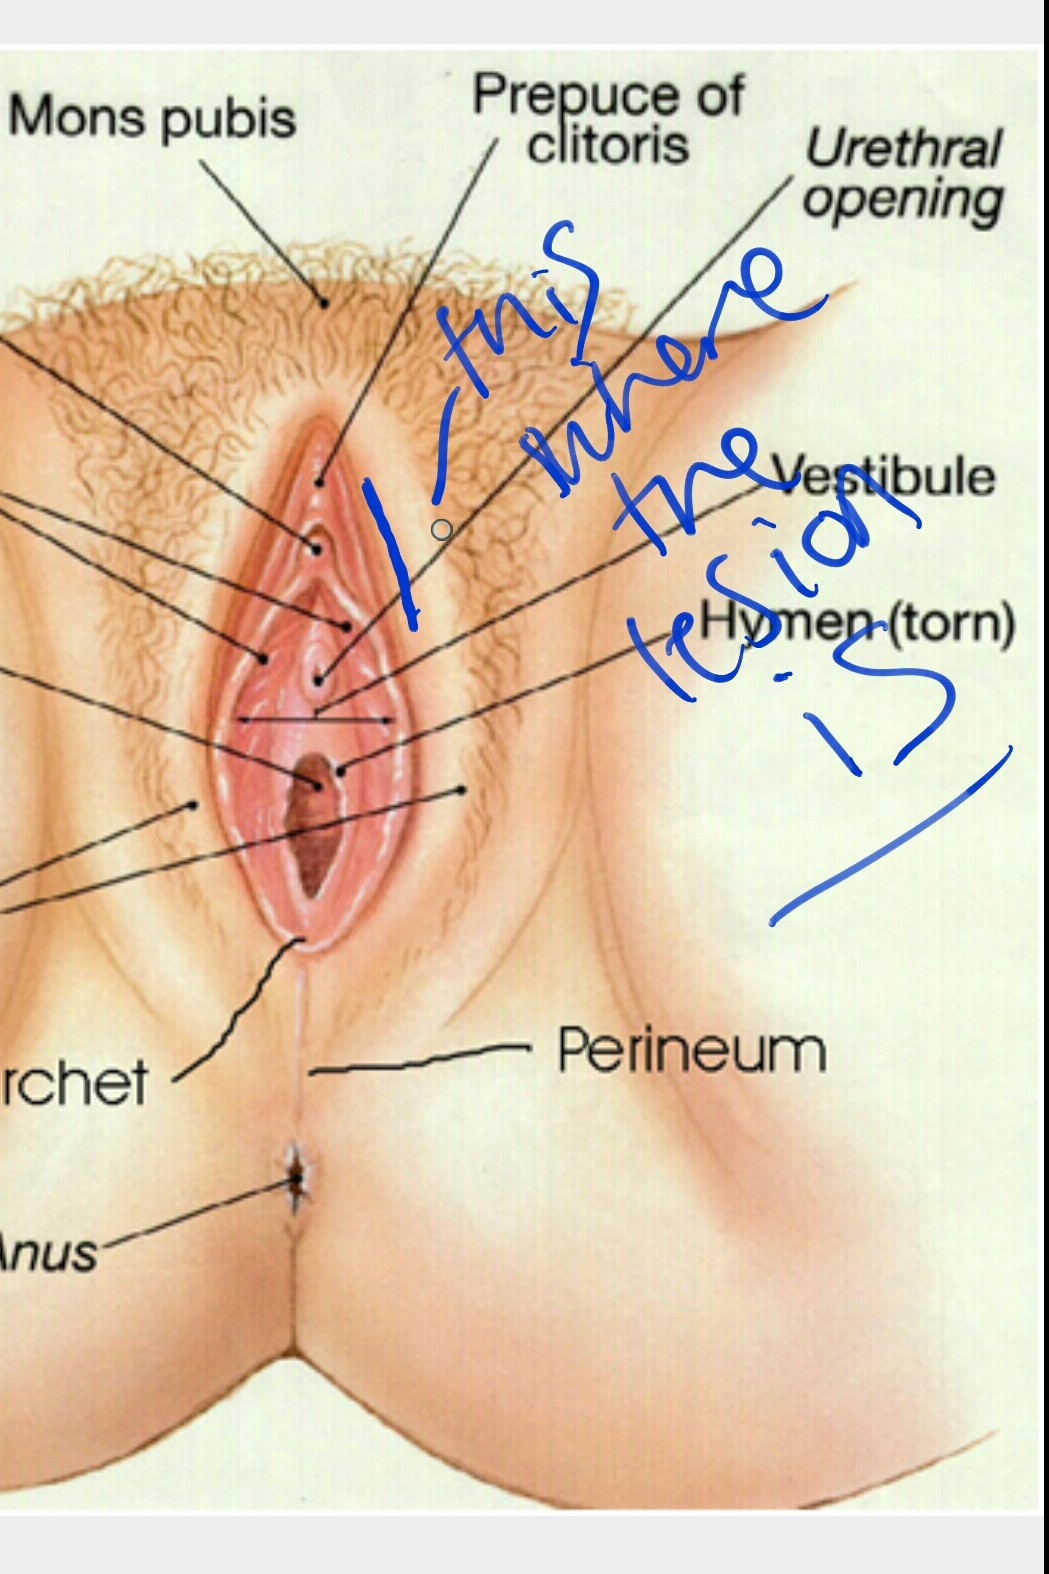 Vulva and penis intercourse